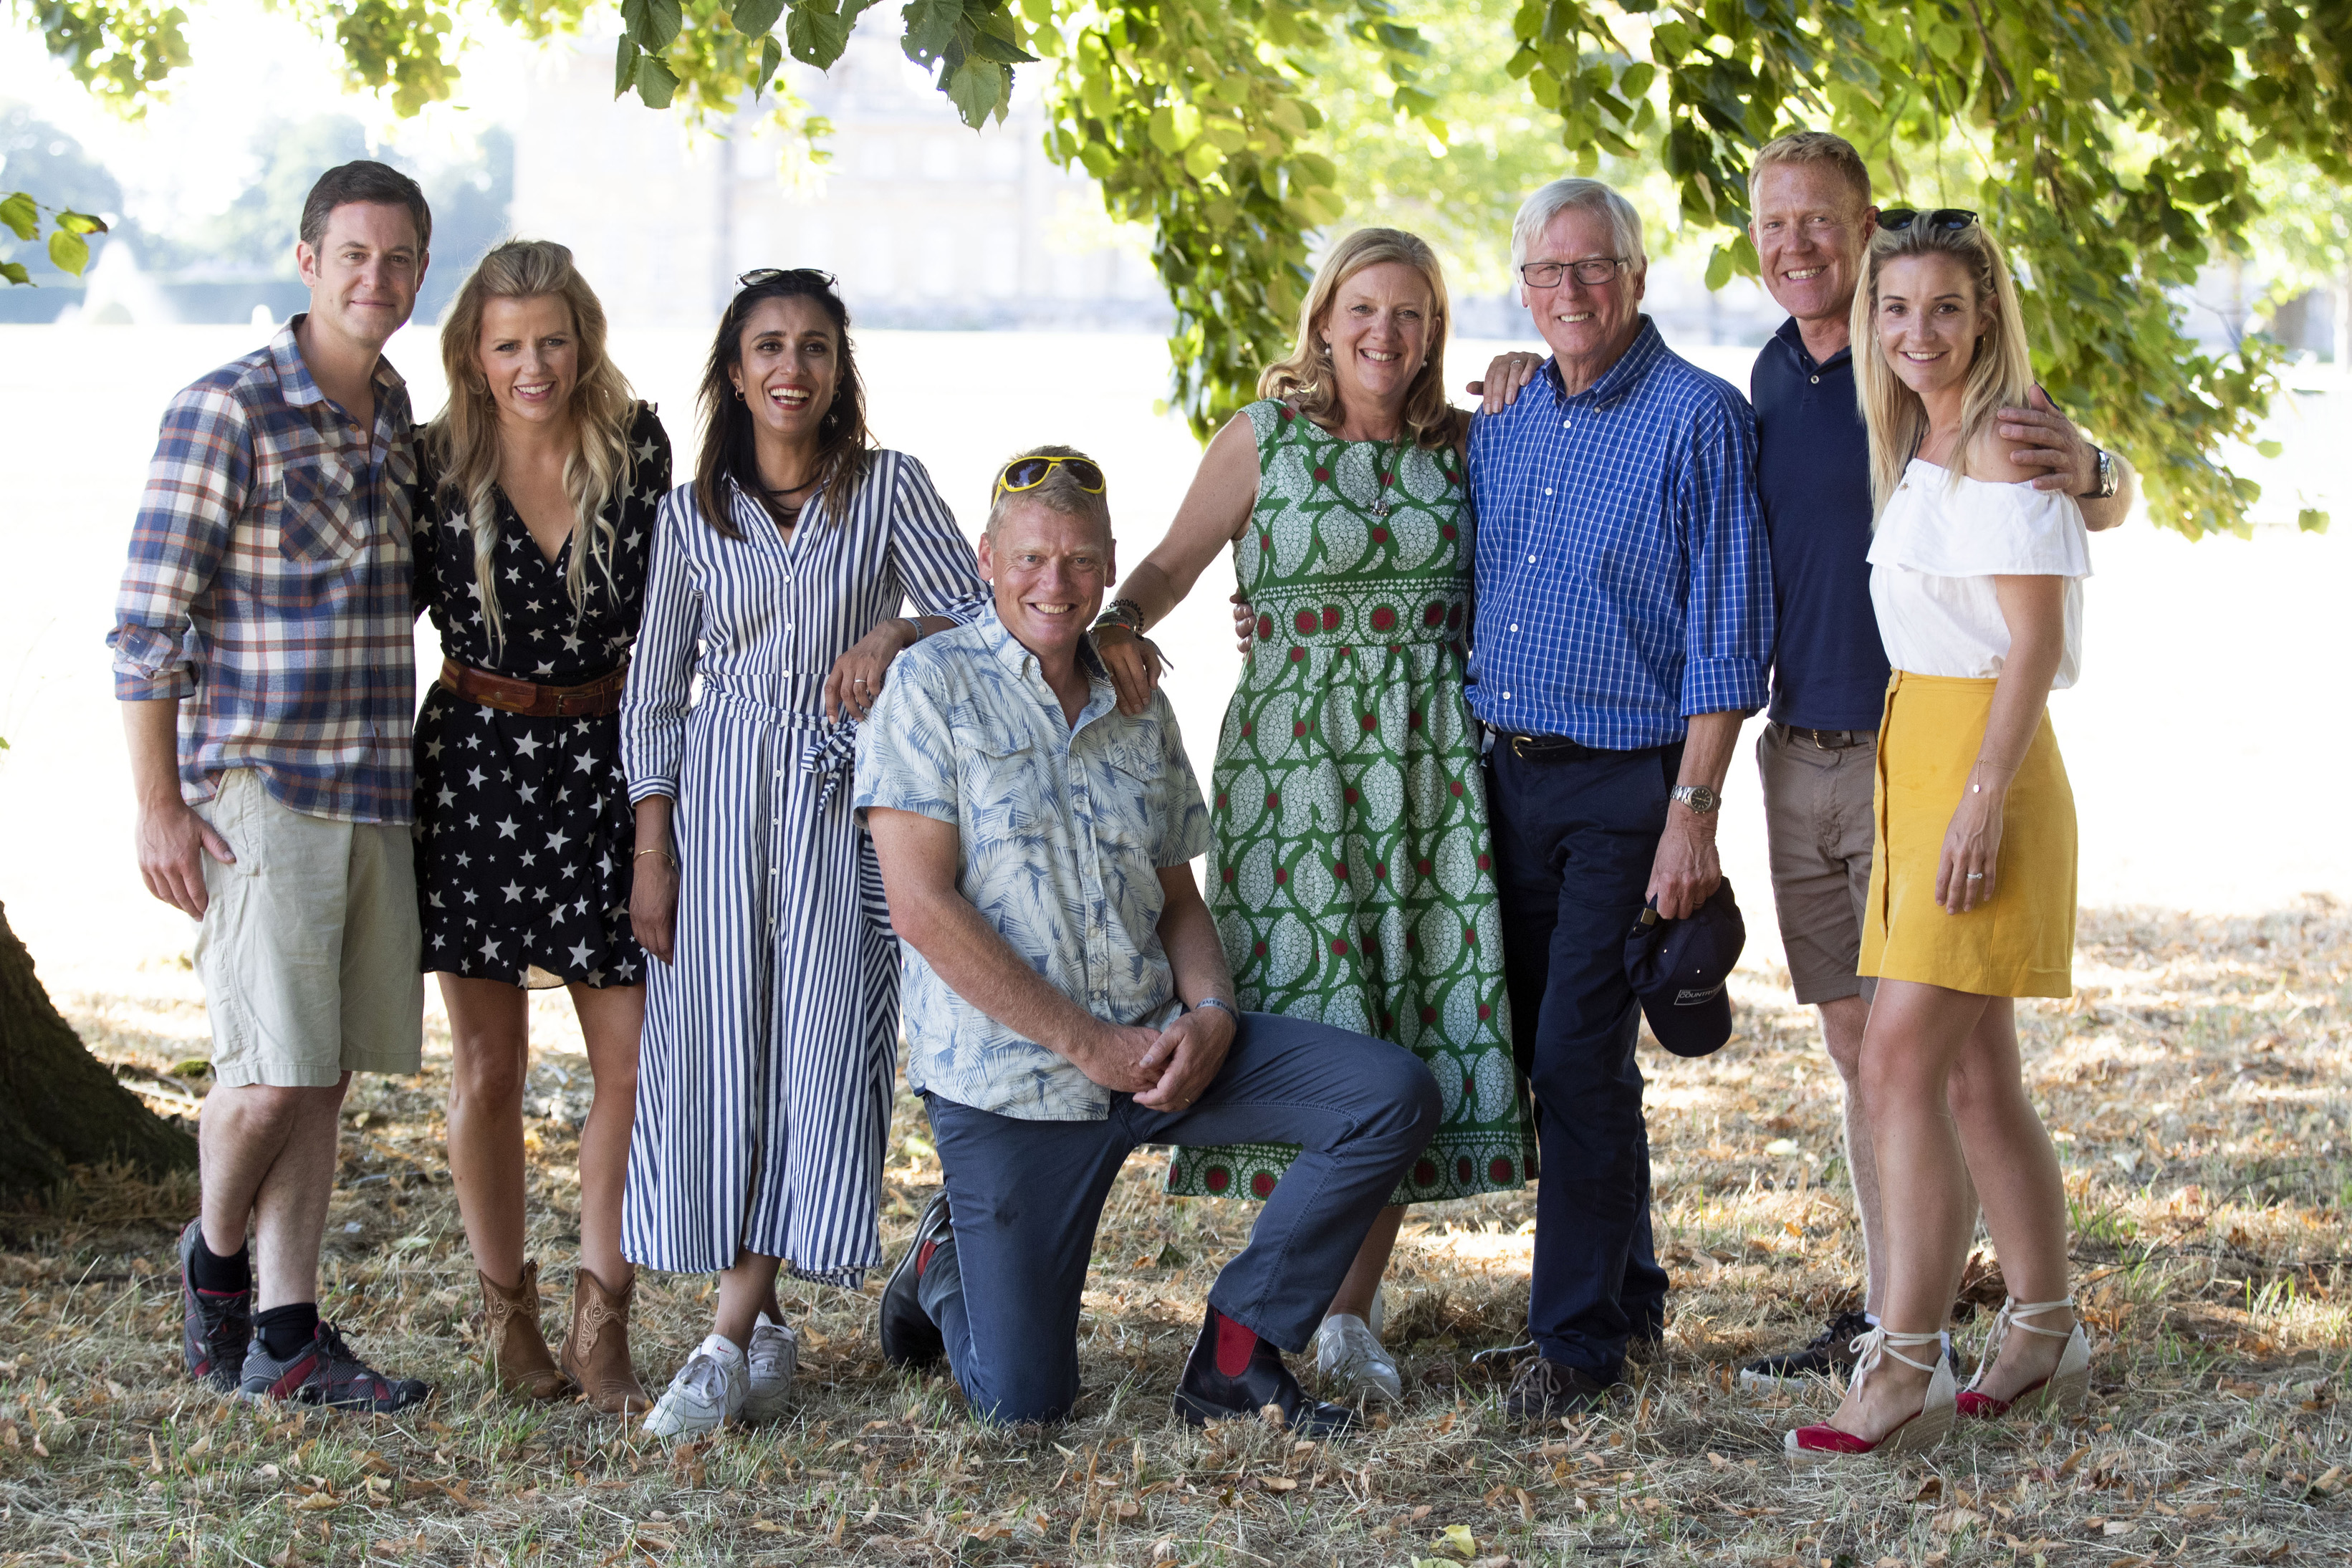 Helen Skelton (far right) with the Countryfile presenters (left to right) Matt Baker, Ellie Harrison, Anita Rani, Tom Heap, Charlotte Smith, John Craven, Adam Henson, at Blenheim Palace, near Woodstock, Oxfordshire, August 2018. (Steve Parsons/PA)